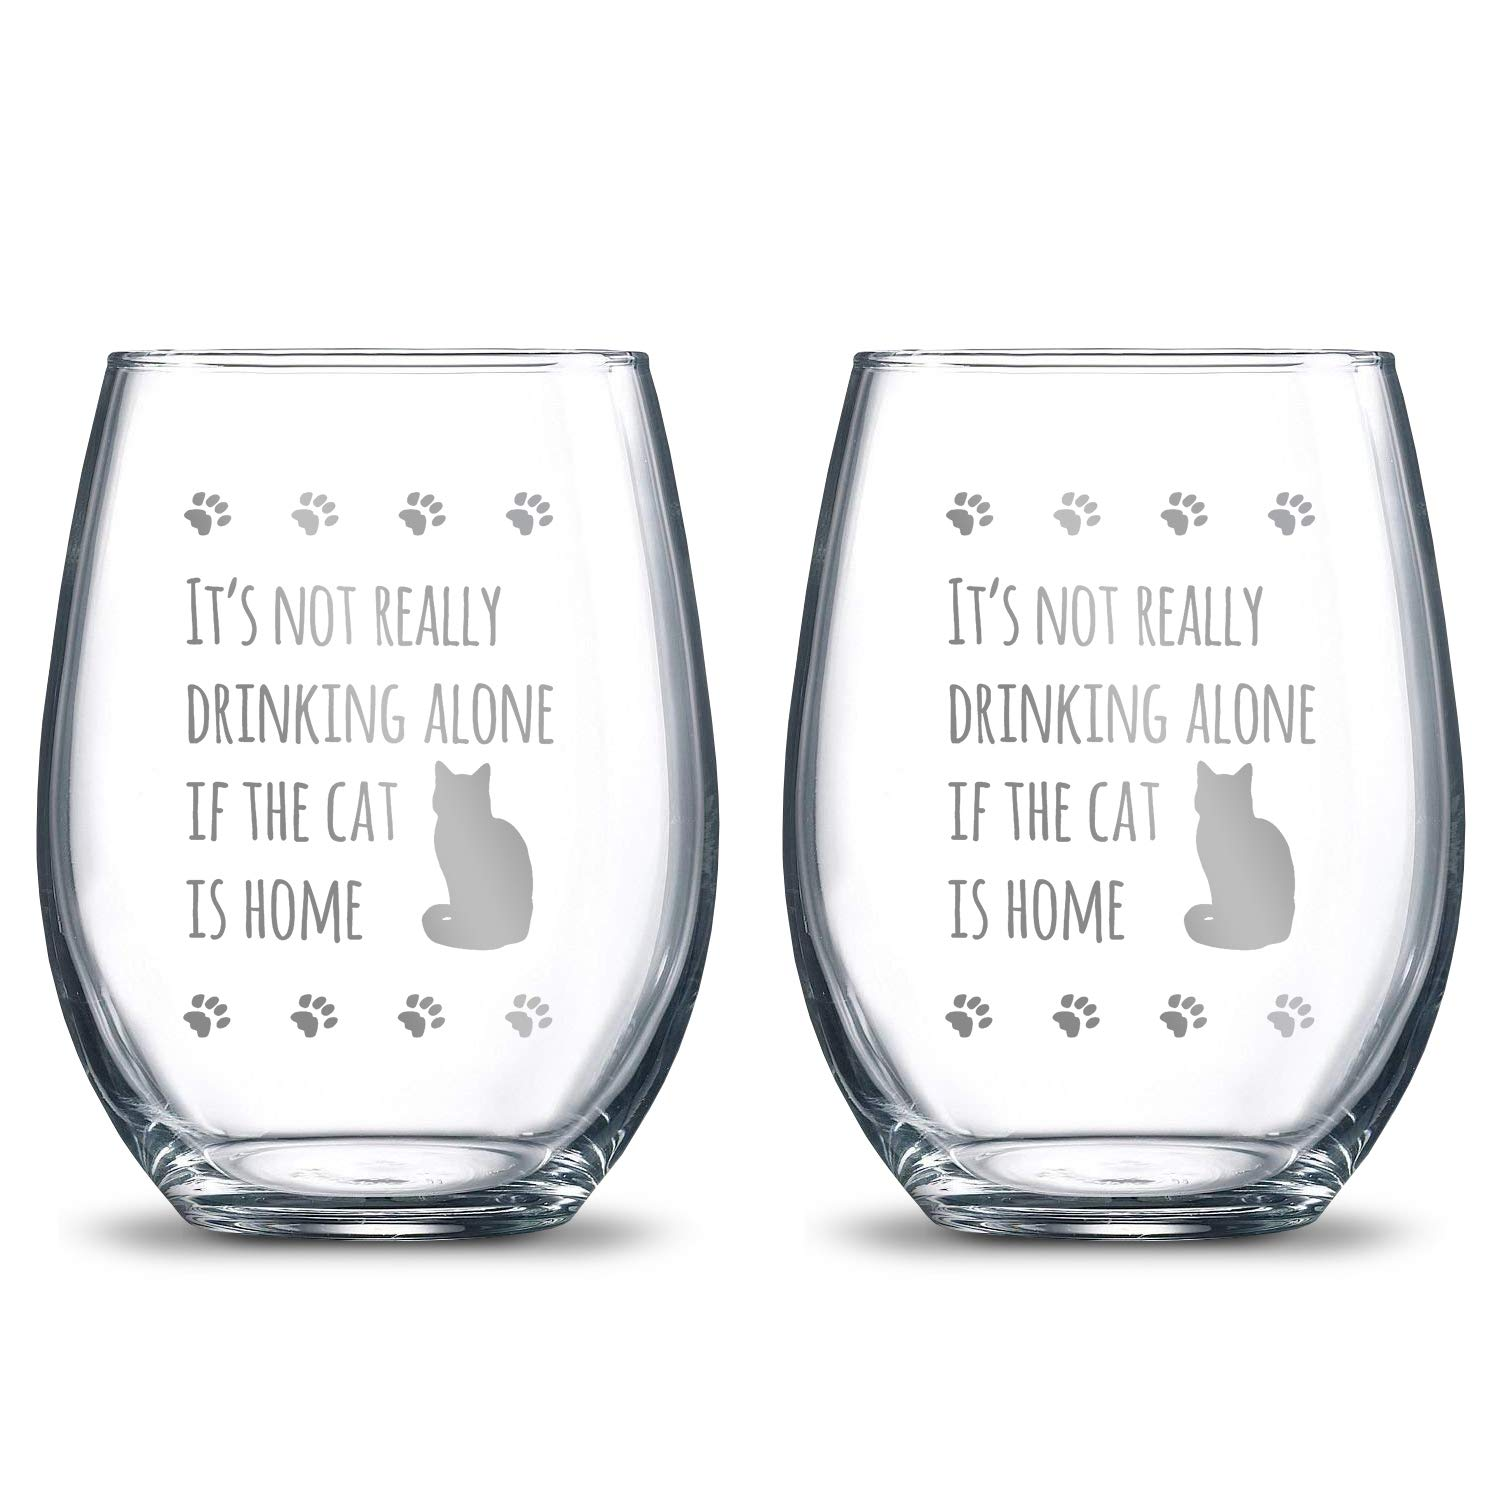 It's Not Really Drinking Alone if the Cat is Home 21oz. Etched Stemless Wine Glasses | 2 Glass Set Packed in an Stylish Gift Box | Premium Hand Etching | The Perfect Cat Lovers Gift